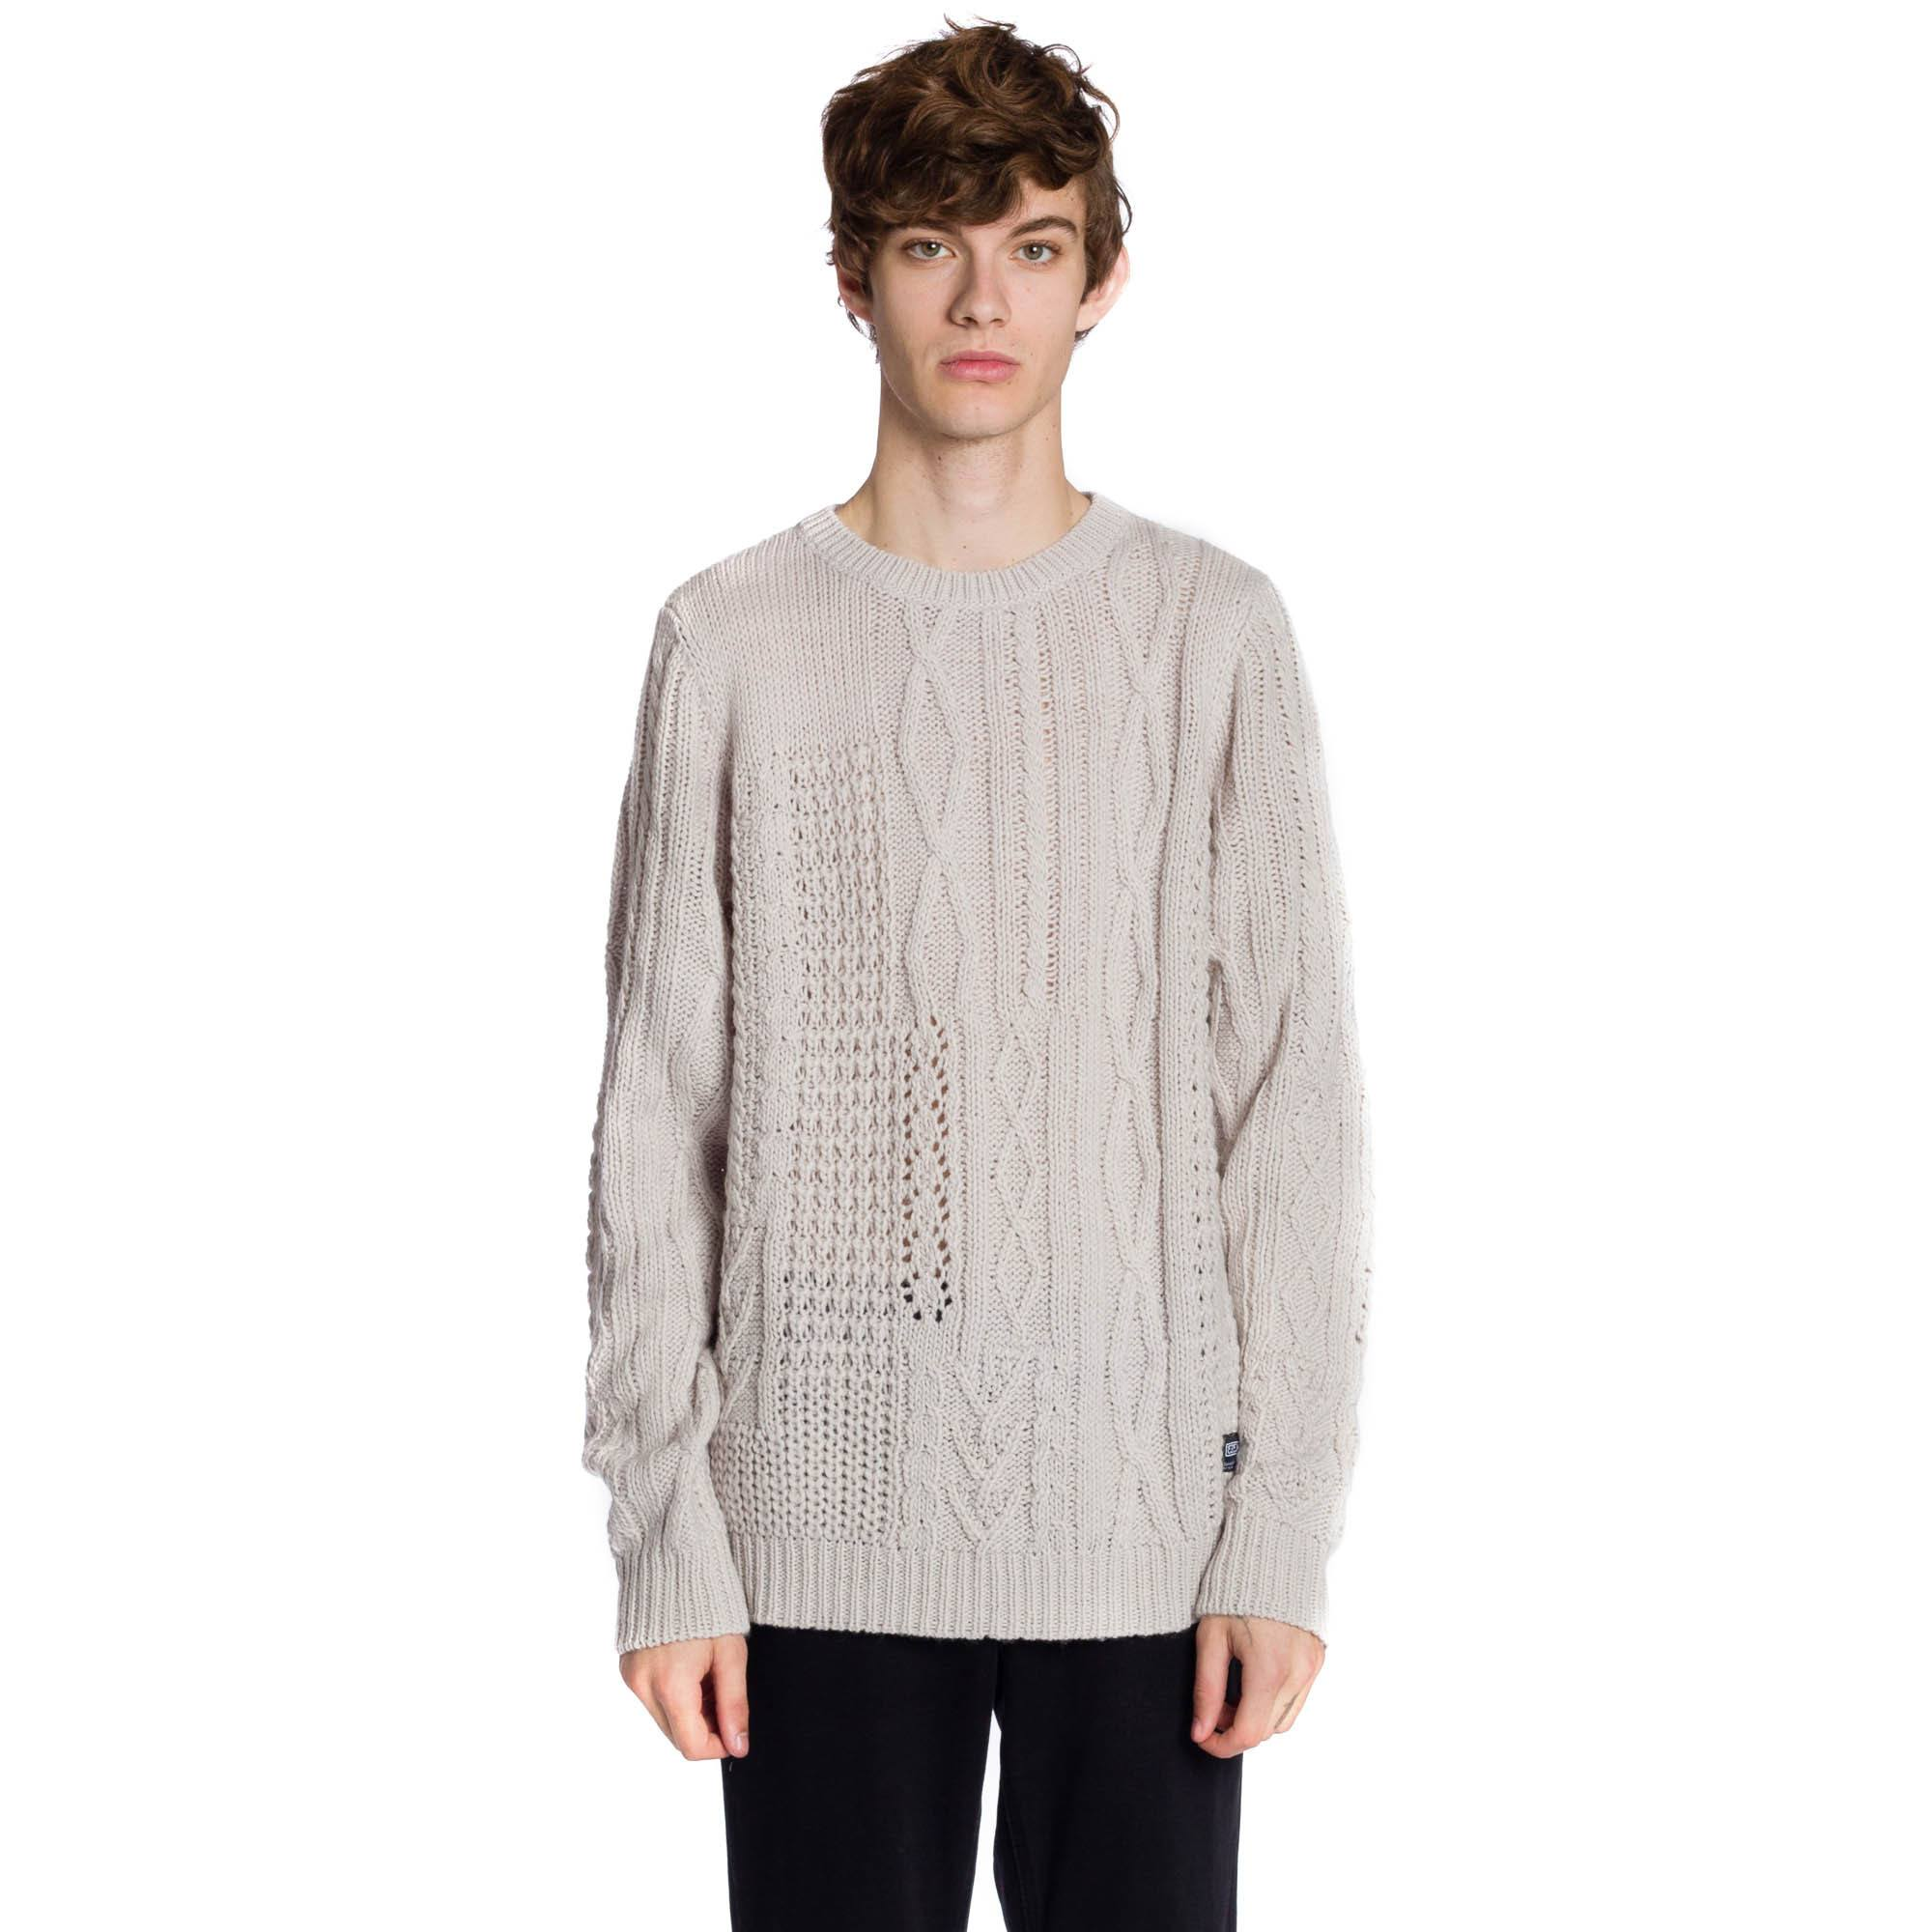 Mixed Up Long Sleeve Sweater - Ivory